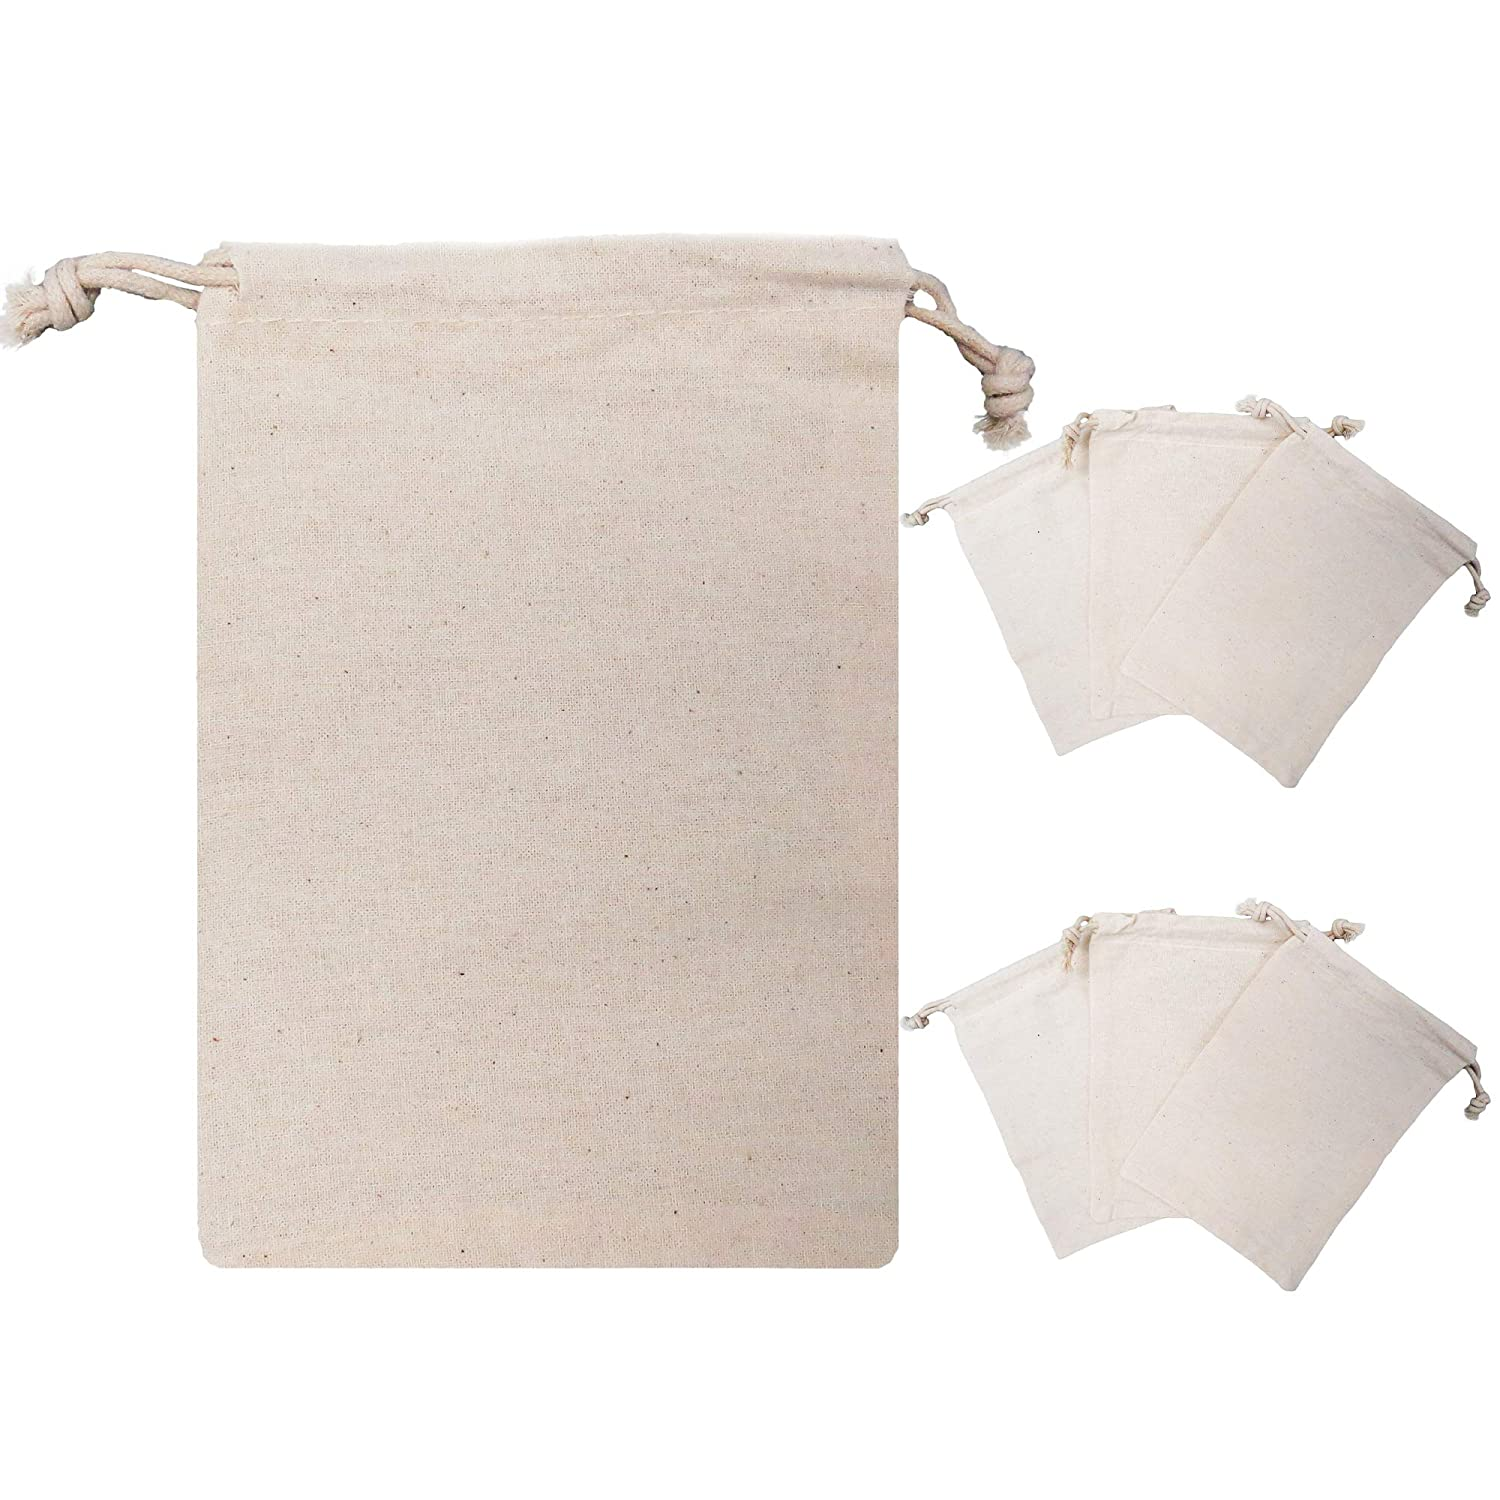 !Rakrisa 25 Pcs 3X4 Inch Muslin Double Drawstring Bags | Light Tan Muslin Bags für Party Favors, Baked Treats & Gifts